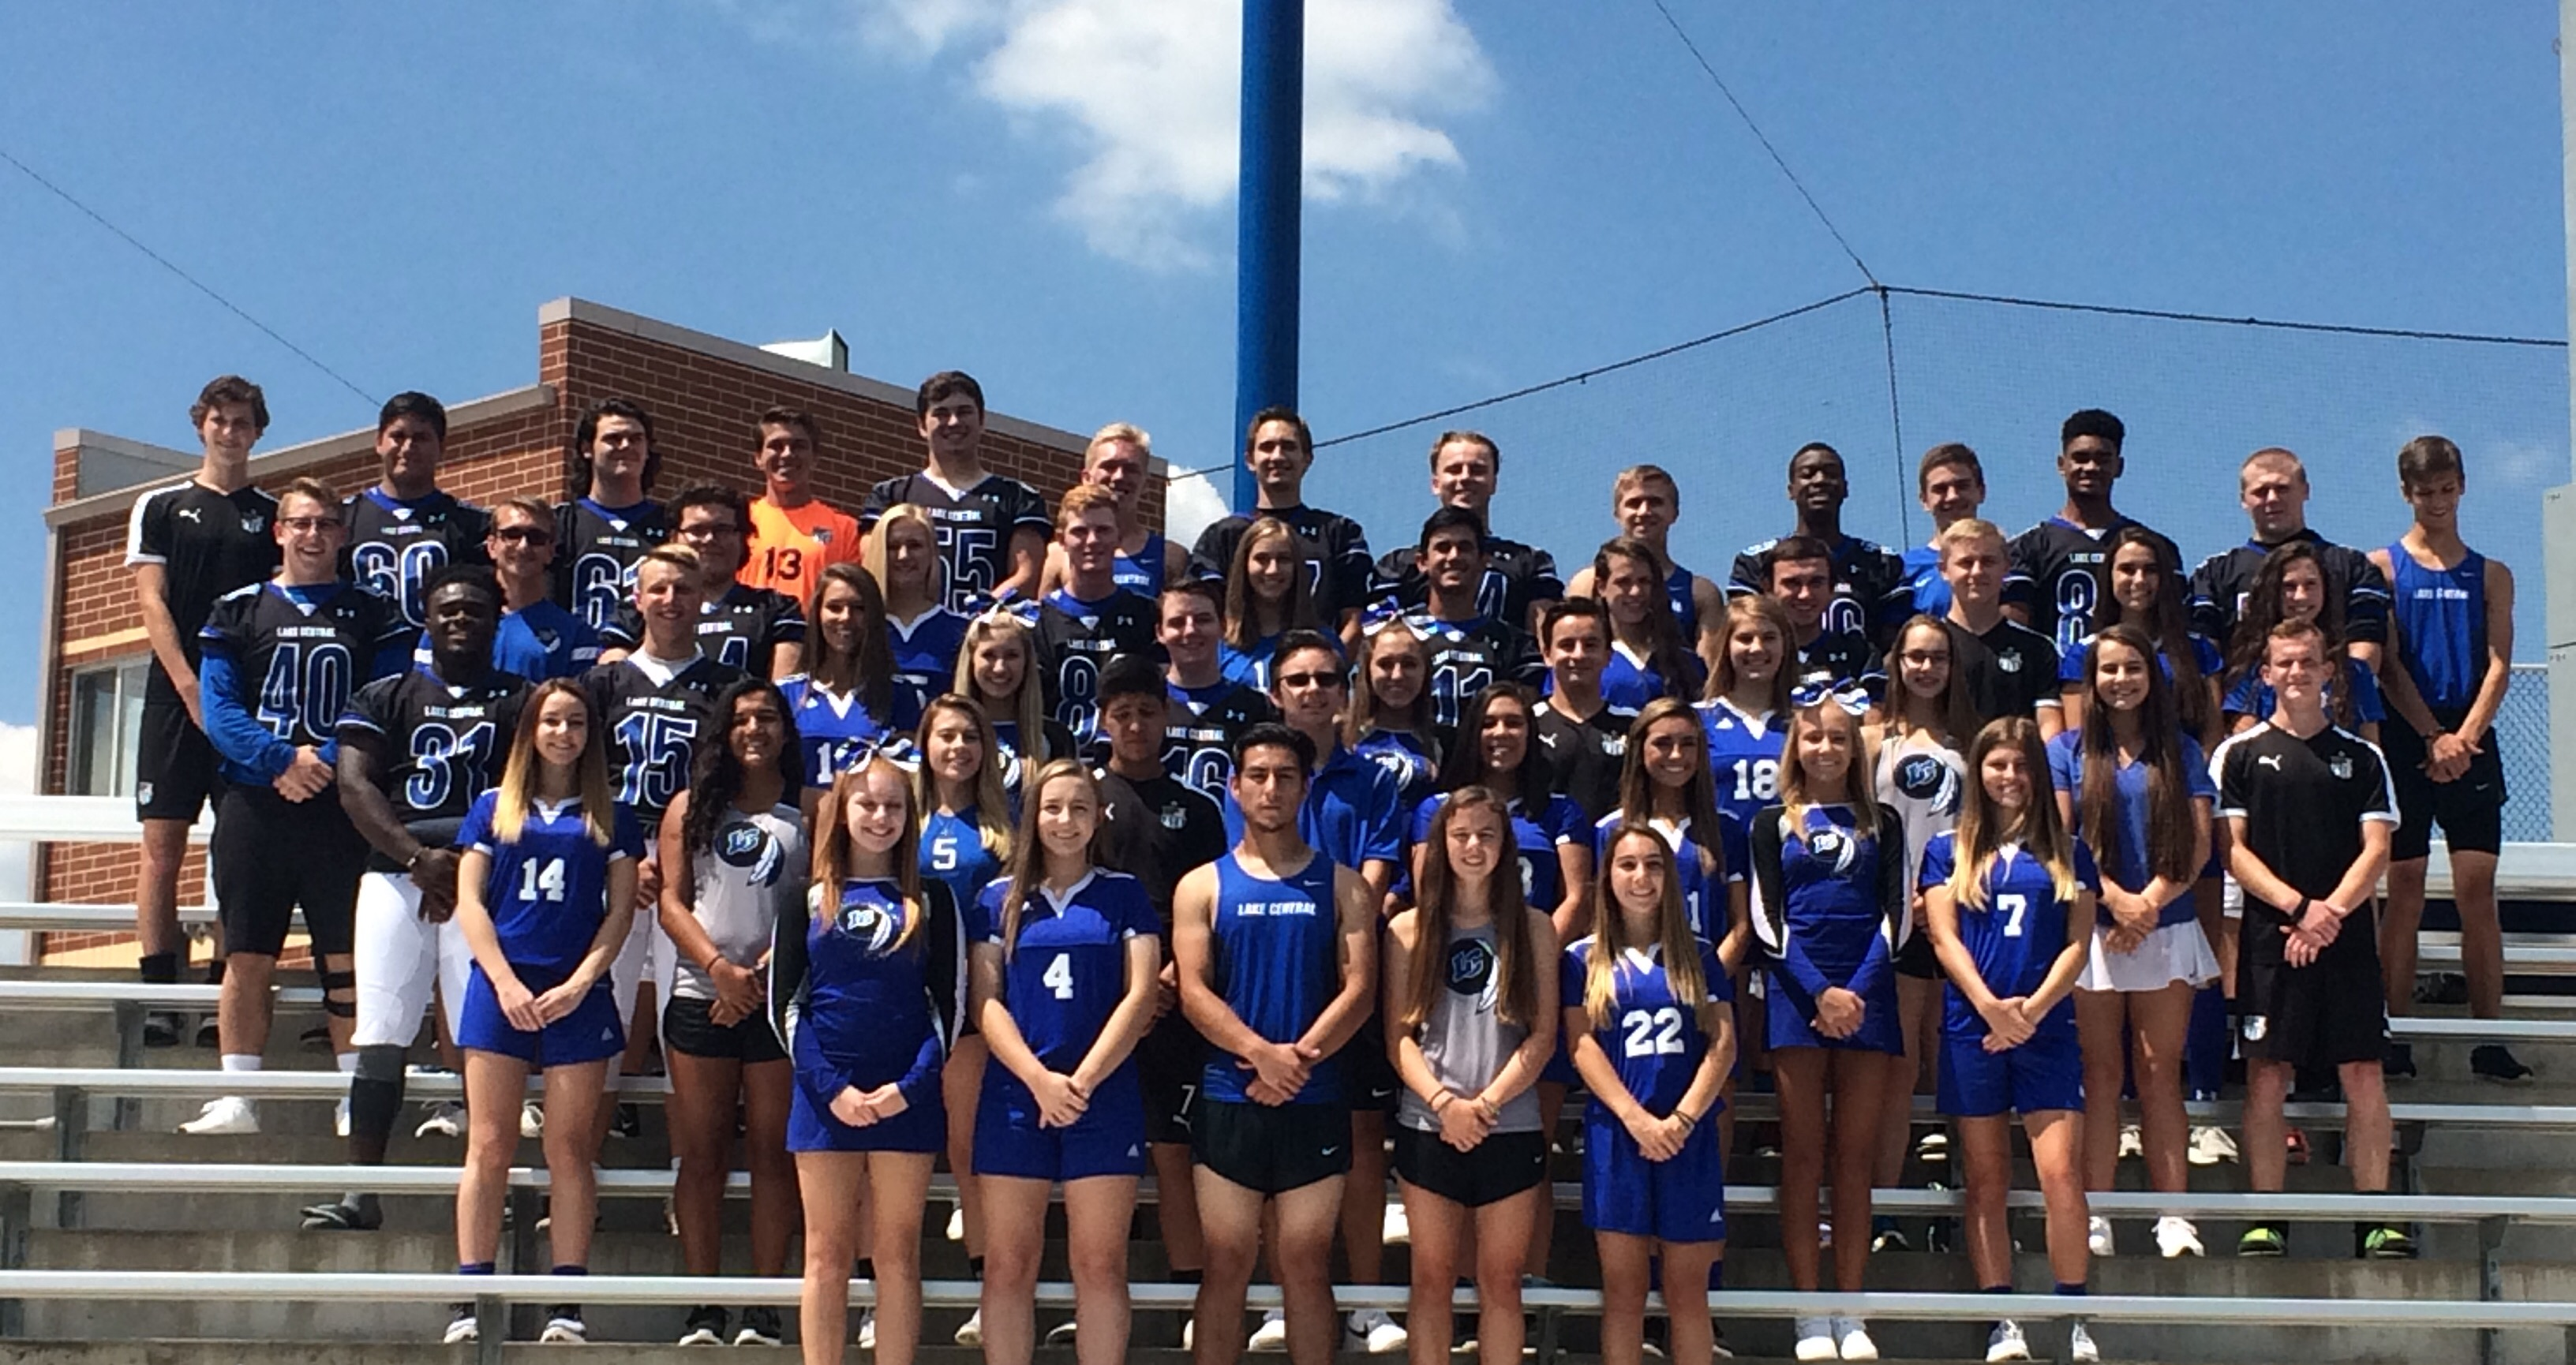 Lake Central Fall Senior Athletes Group Photo